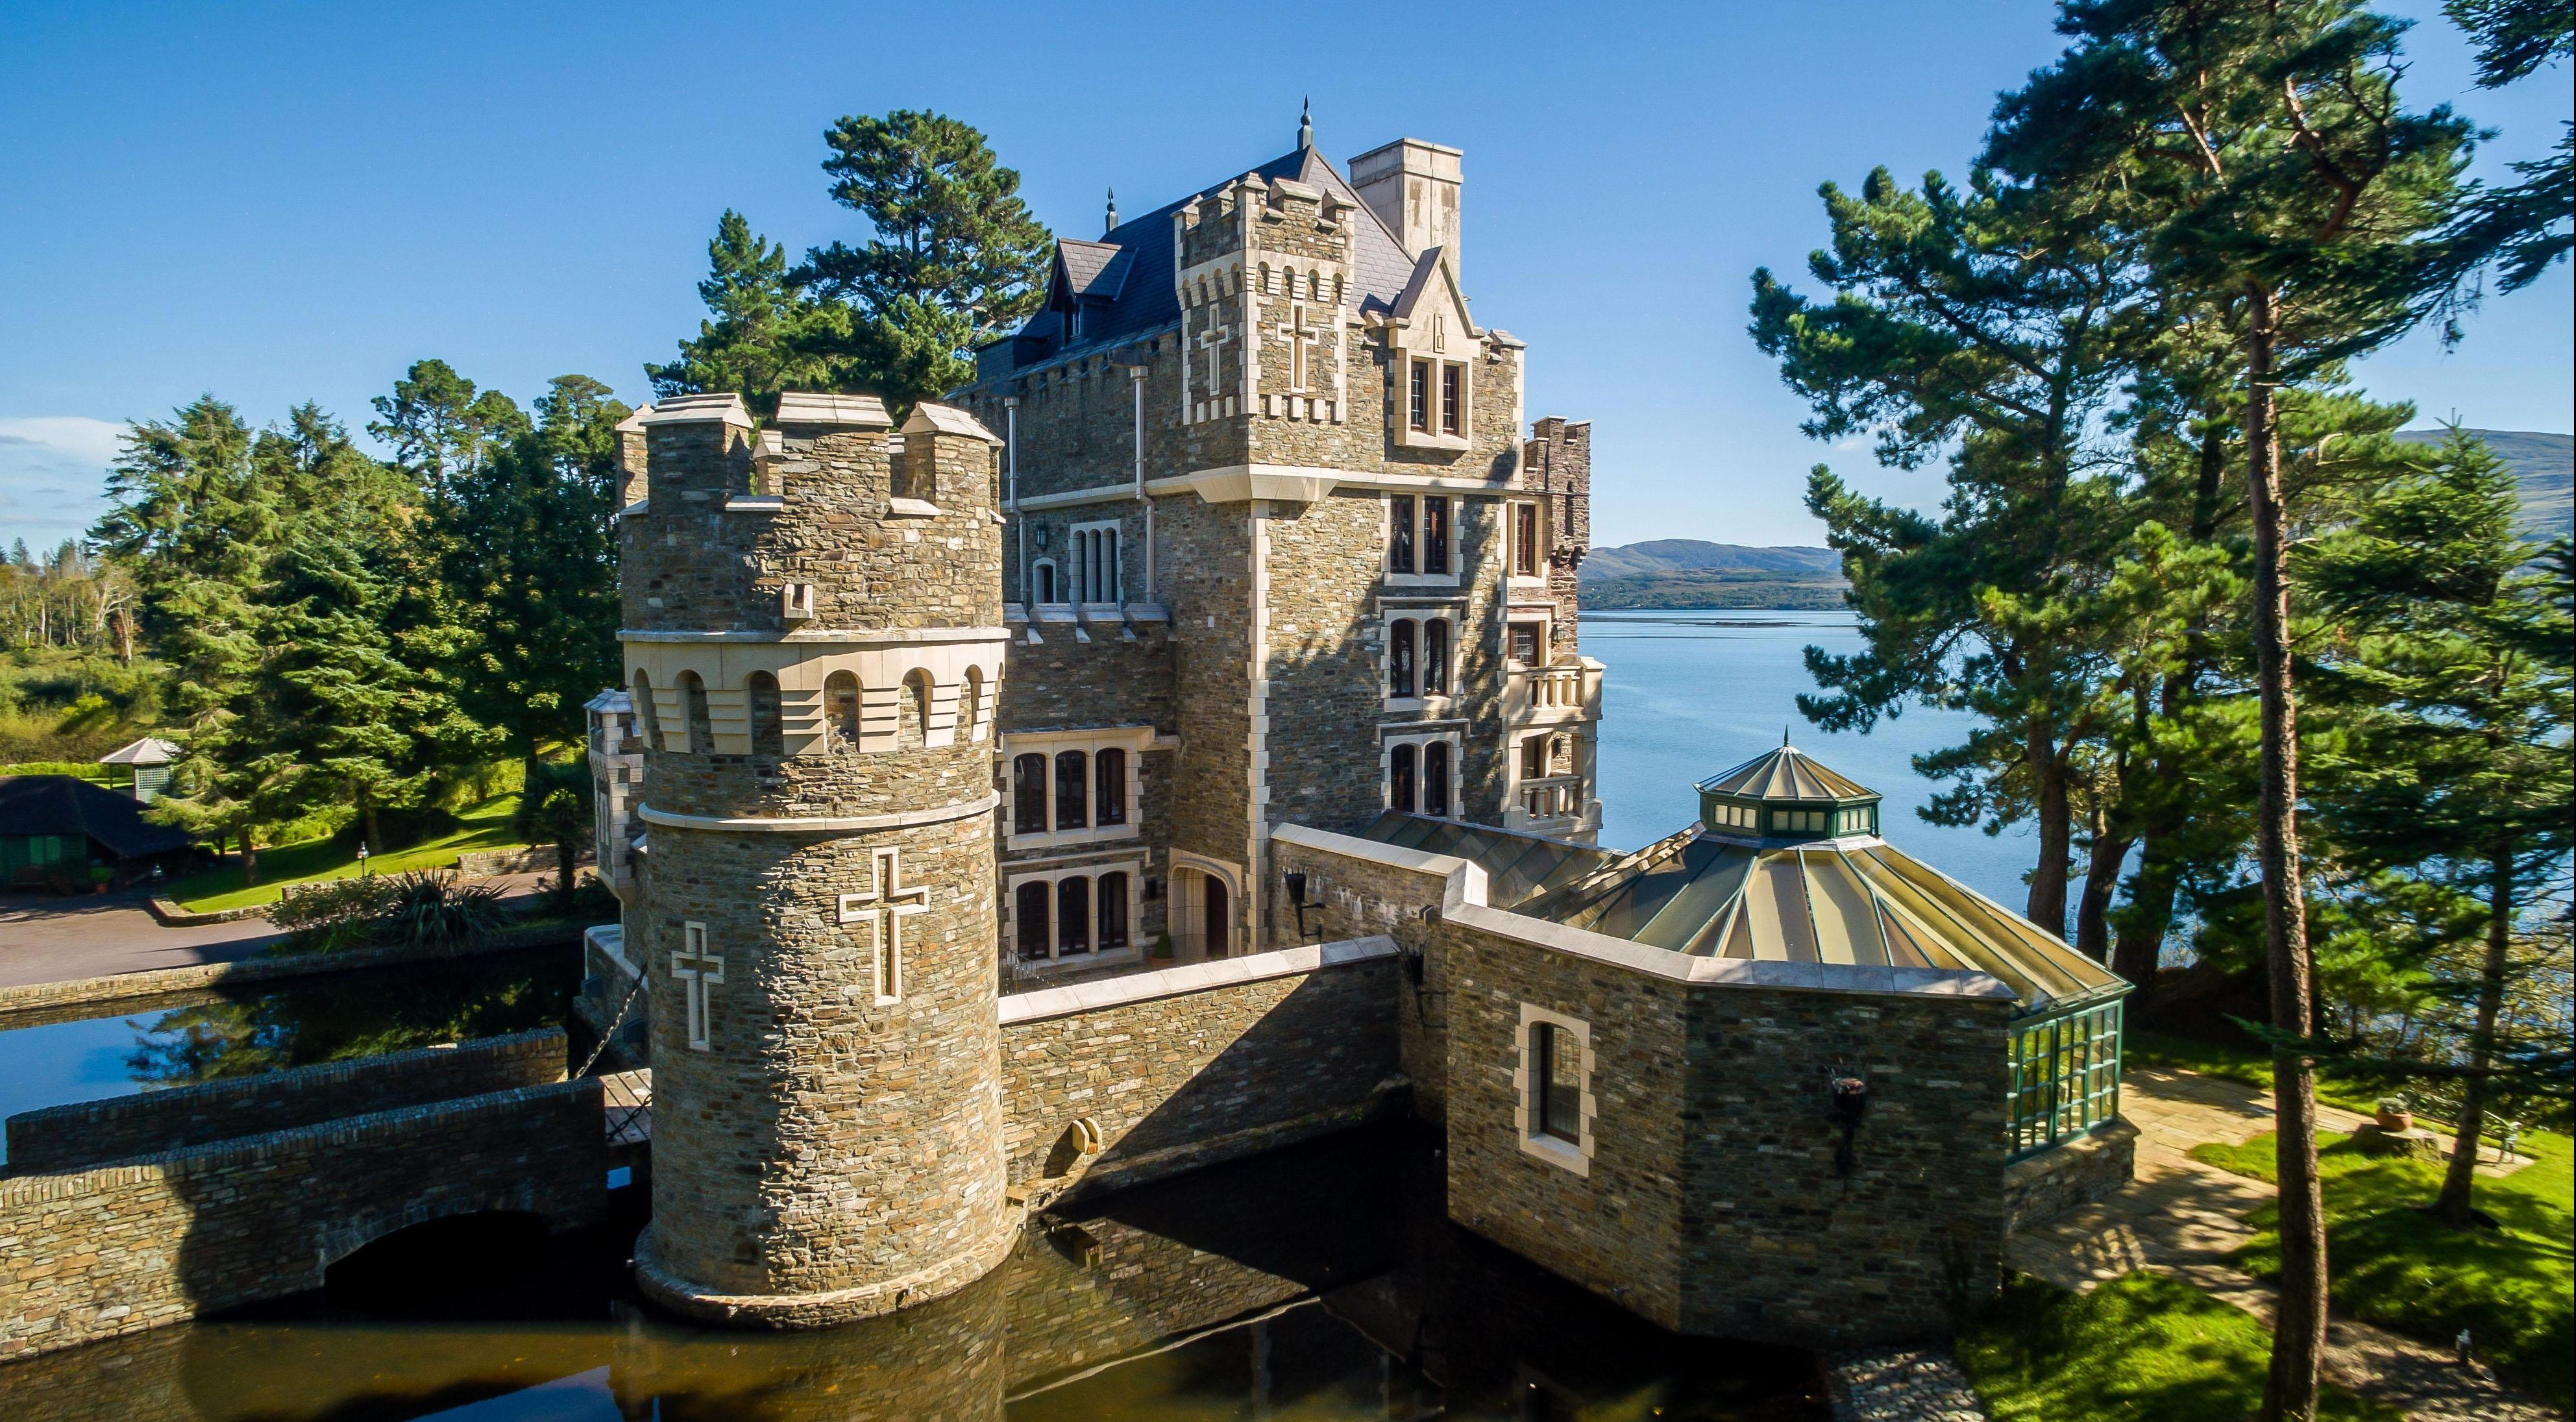 Stunning five-bed fairytale castle with swimming pool CAVE, four-poster beds and its own moat on sale for £4m